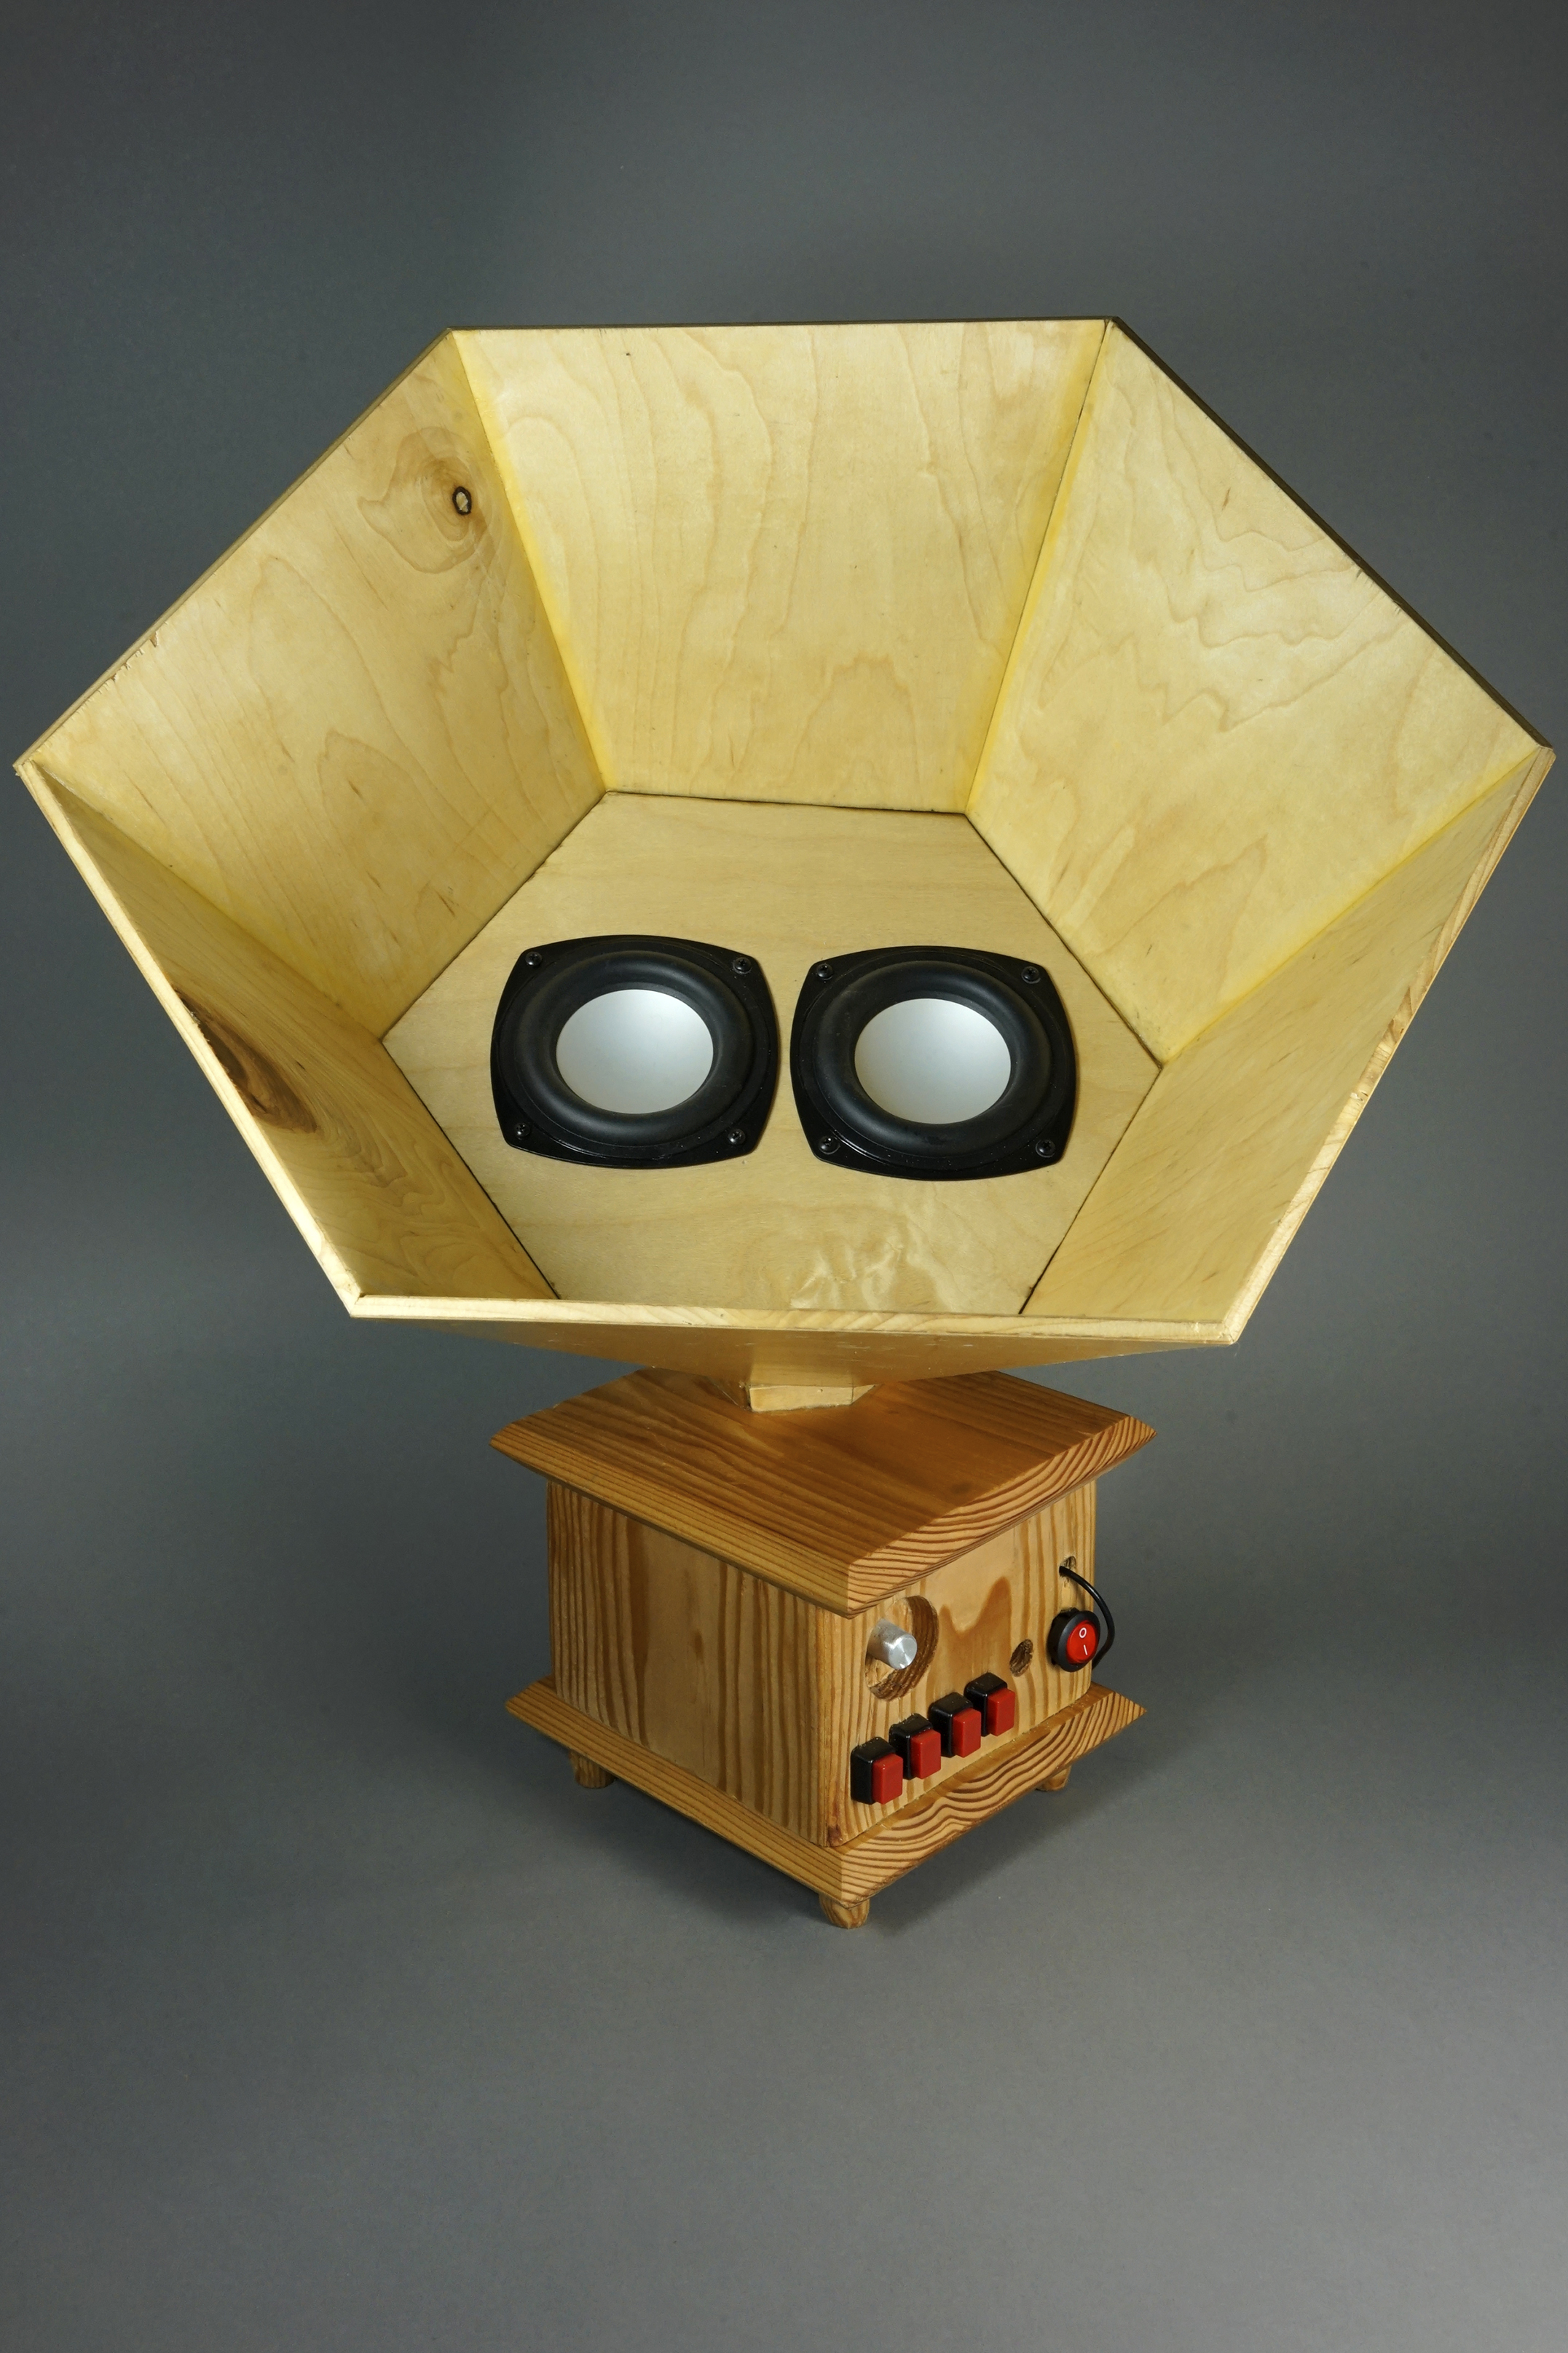 Lucy's phonograph-inspired amplifier with built-in drum machine.